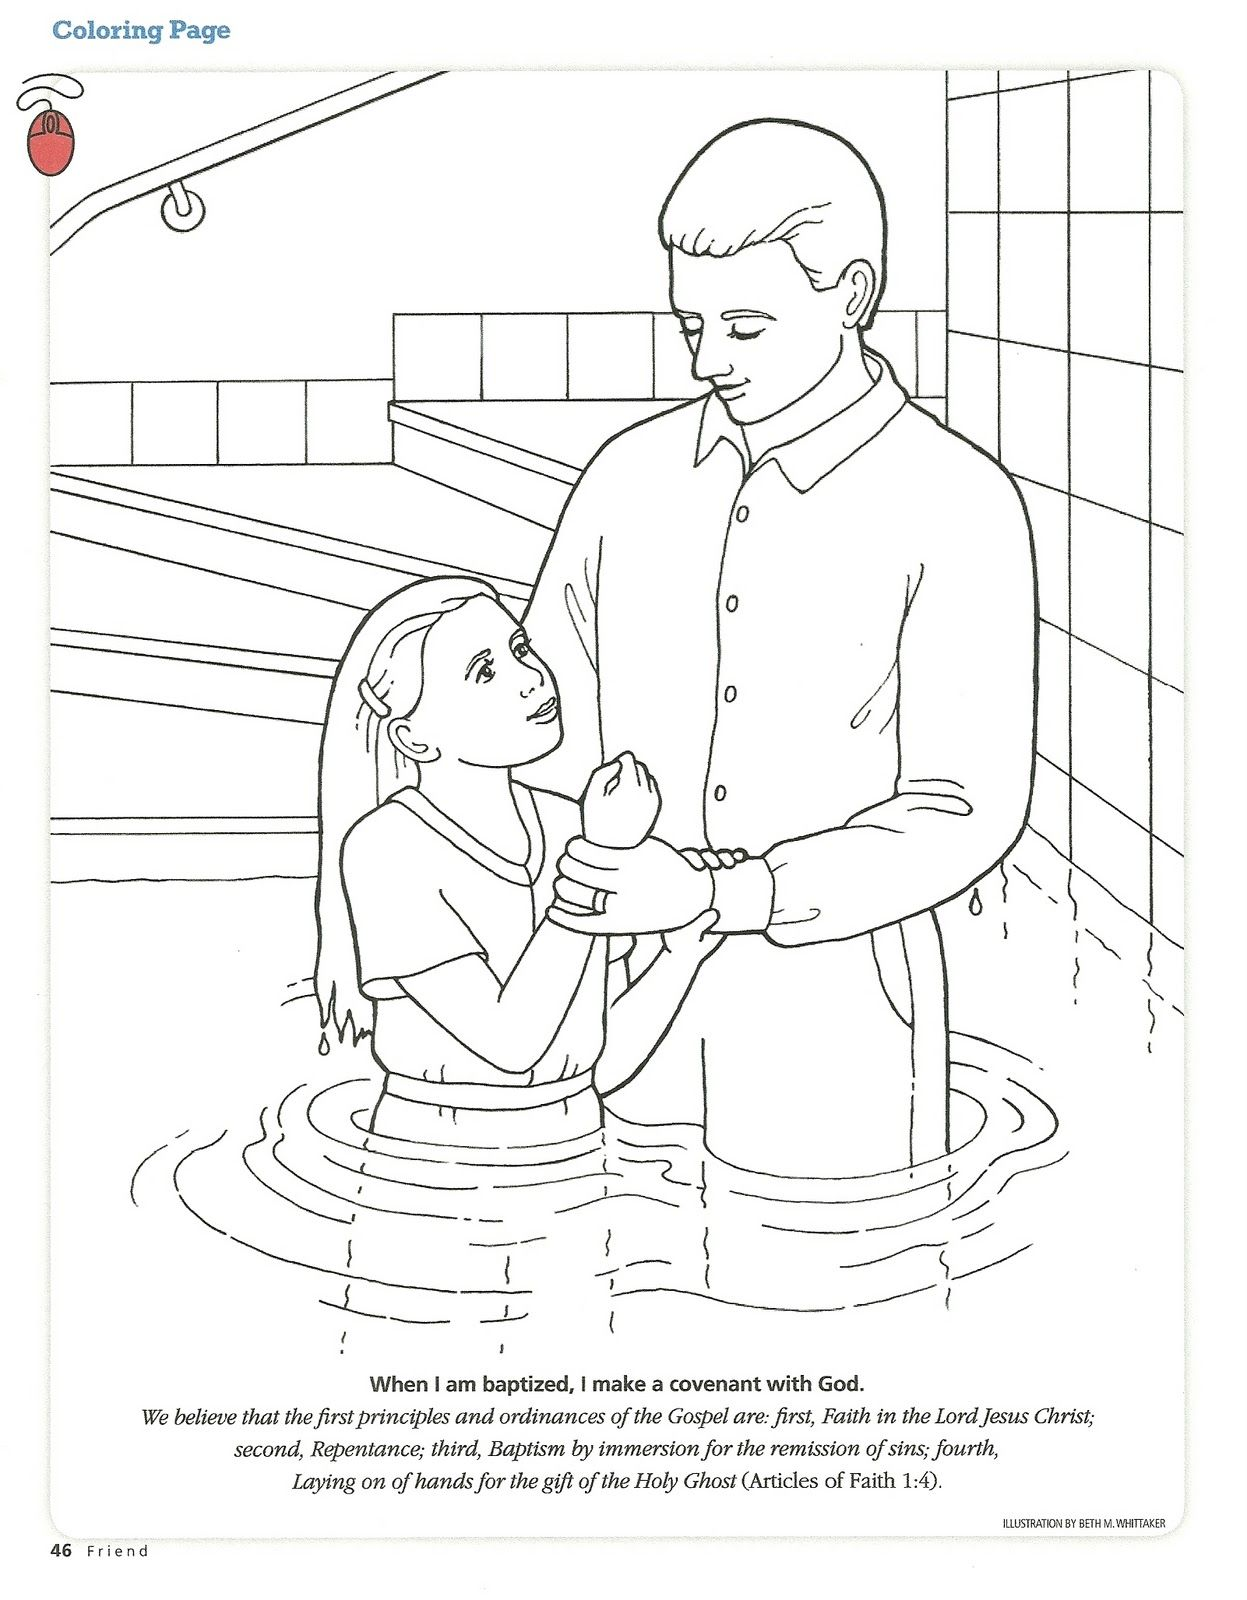 baptism confirmation and sacrament coloring pages fhe